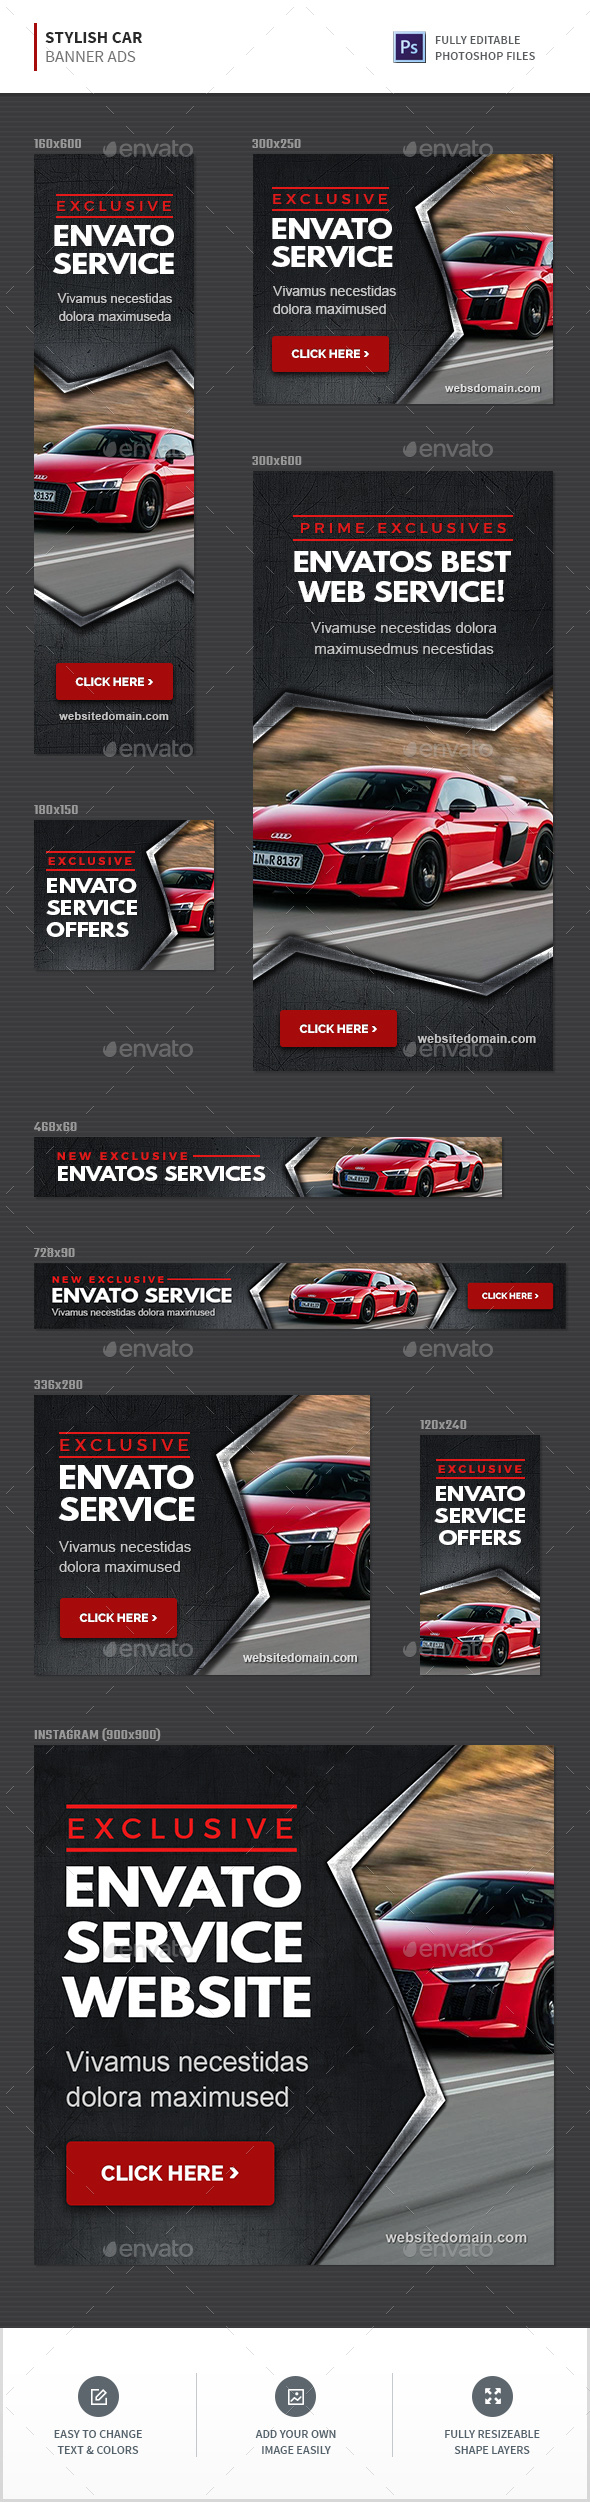 Stylish Car Banners - Banners & Ads Web Elements